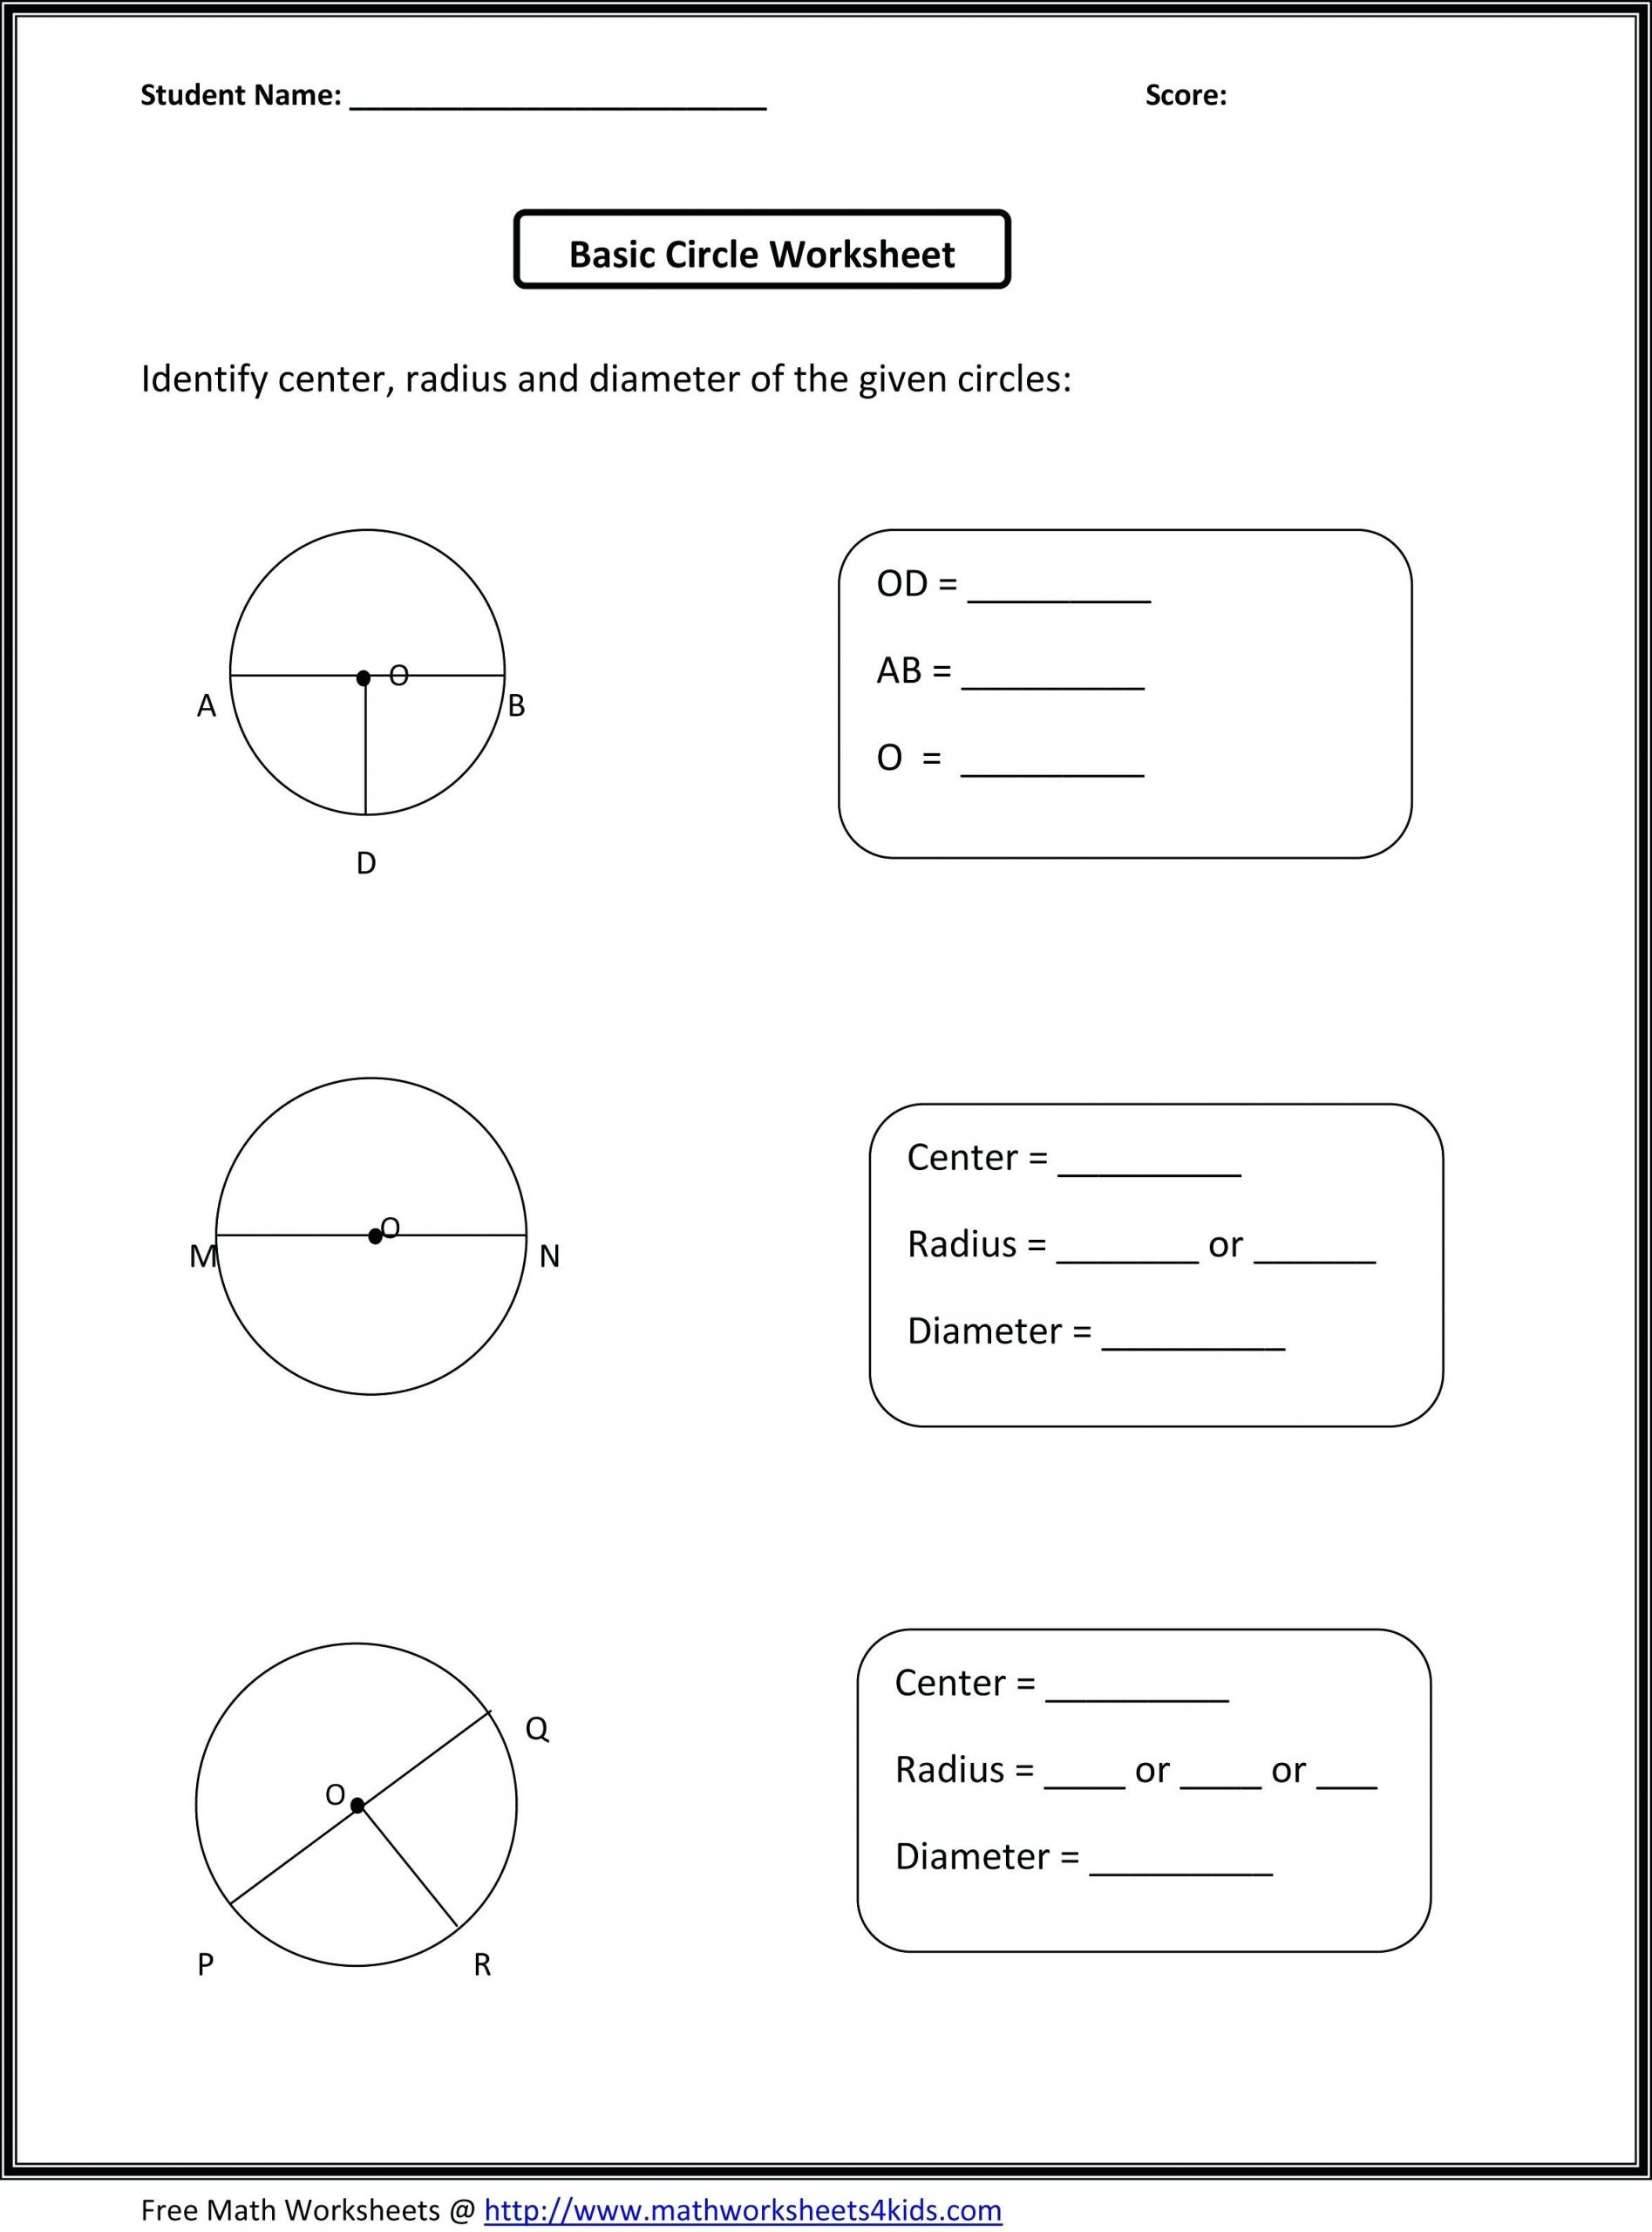 hight resolution of 5 Free Math Worksheets Second Grade 2 Subtraction Subtract whole Hundreds  From 3 Digit Numbers - apocalomegaproductions.com